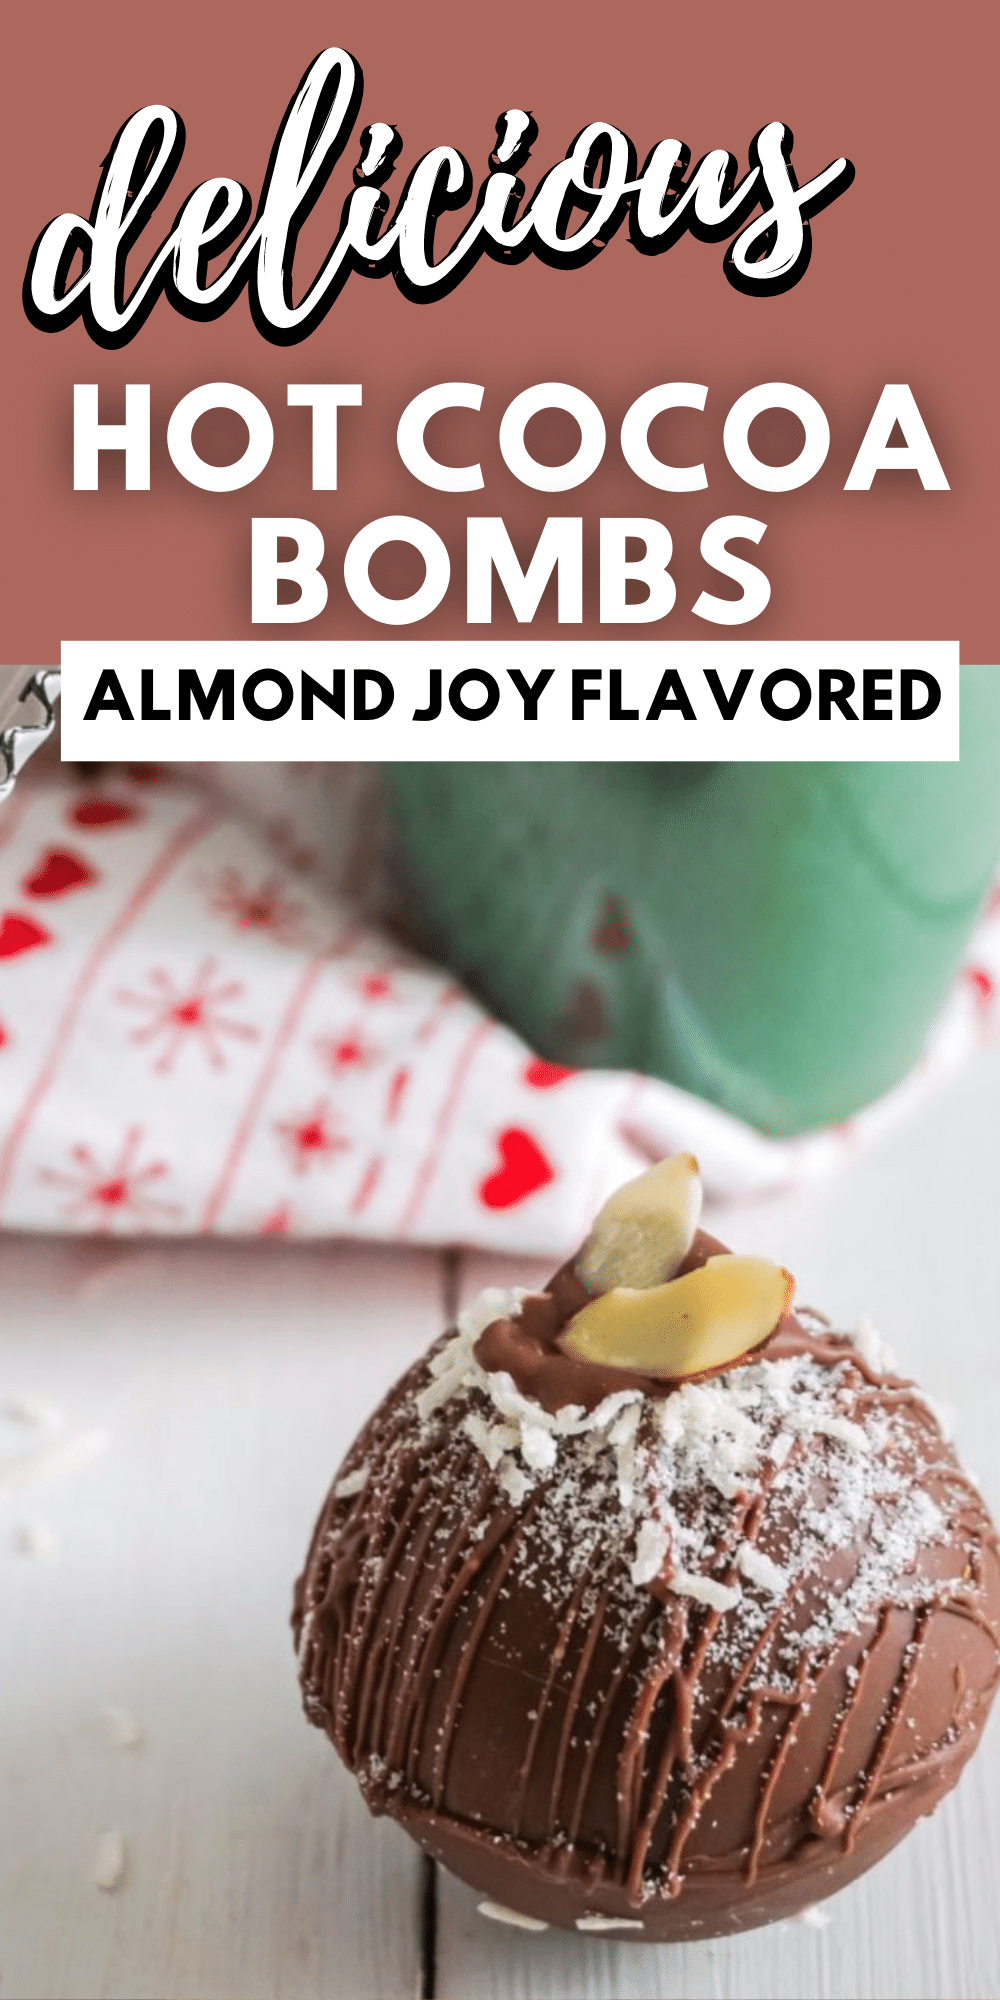 These Almond Joy Hot Cocoa Bombs will make you leave those candy bars at the store and make this instead. Taste just the same! #almondjoy #hotcocoabombs #hotcocoa #recipe via @wondermomwannab